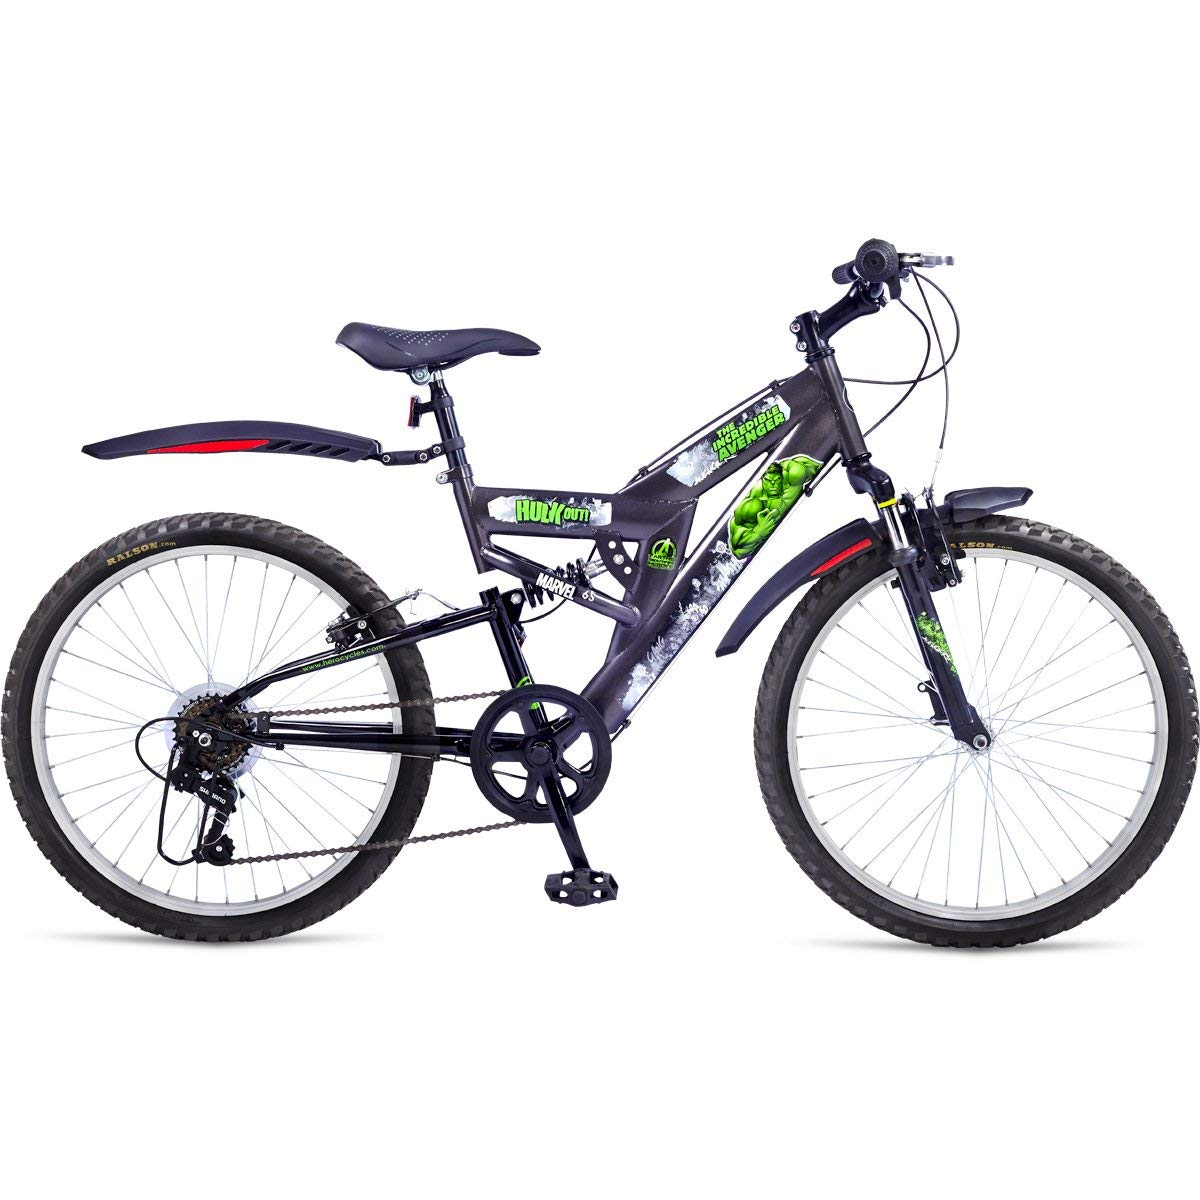 Best Hero Gear Cycles Under 5000 to 7000 in India 2019